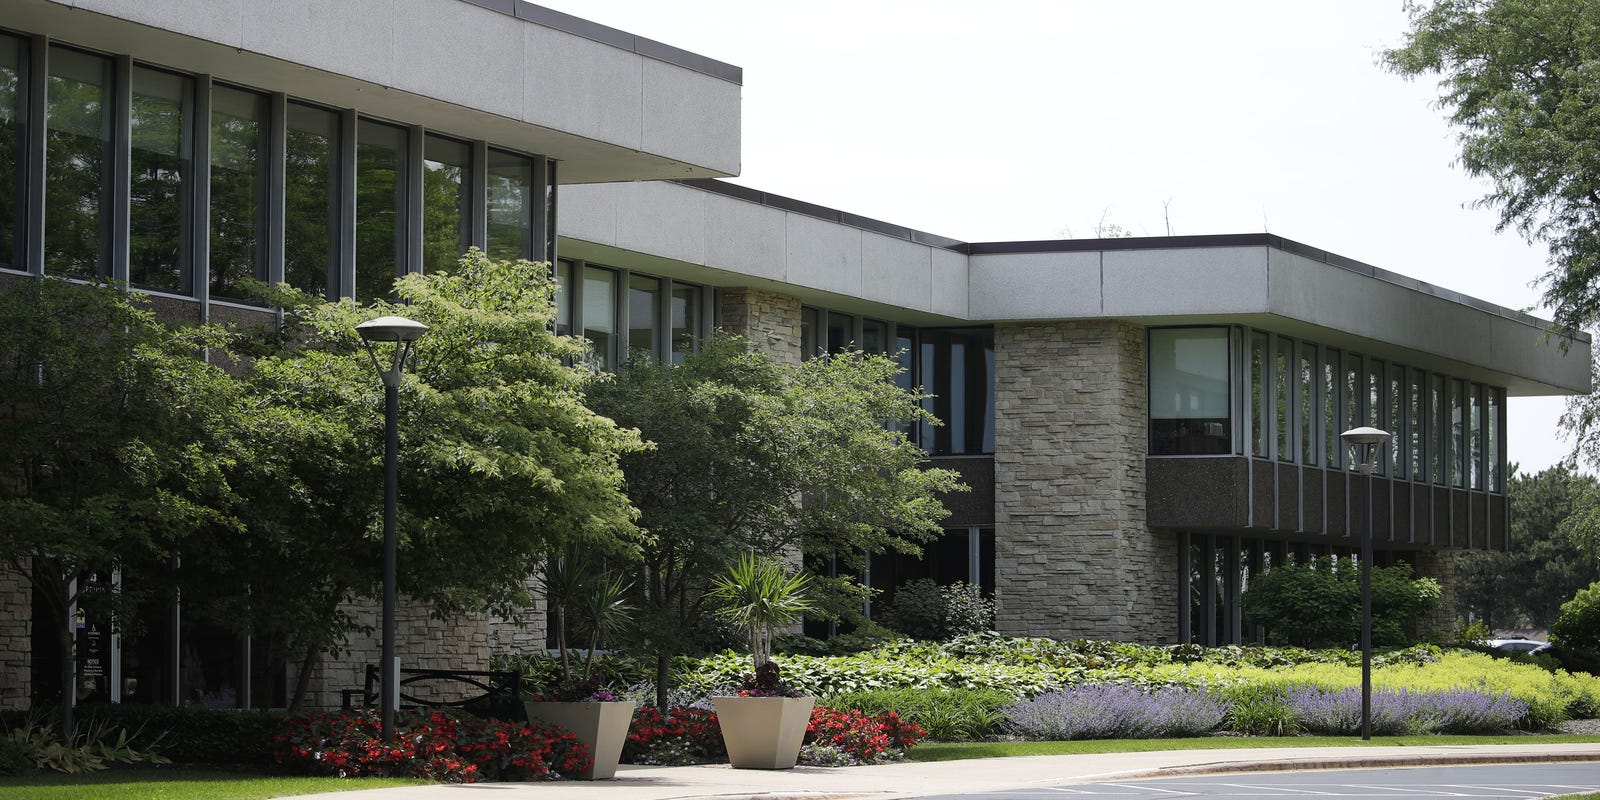 Fleet Farm S Move To Secura S Appleton Building In More Detail